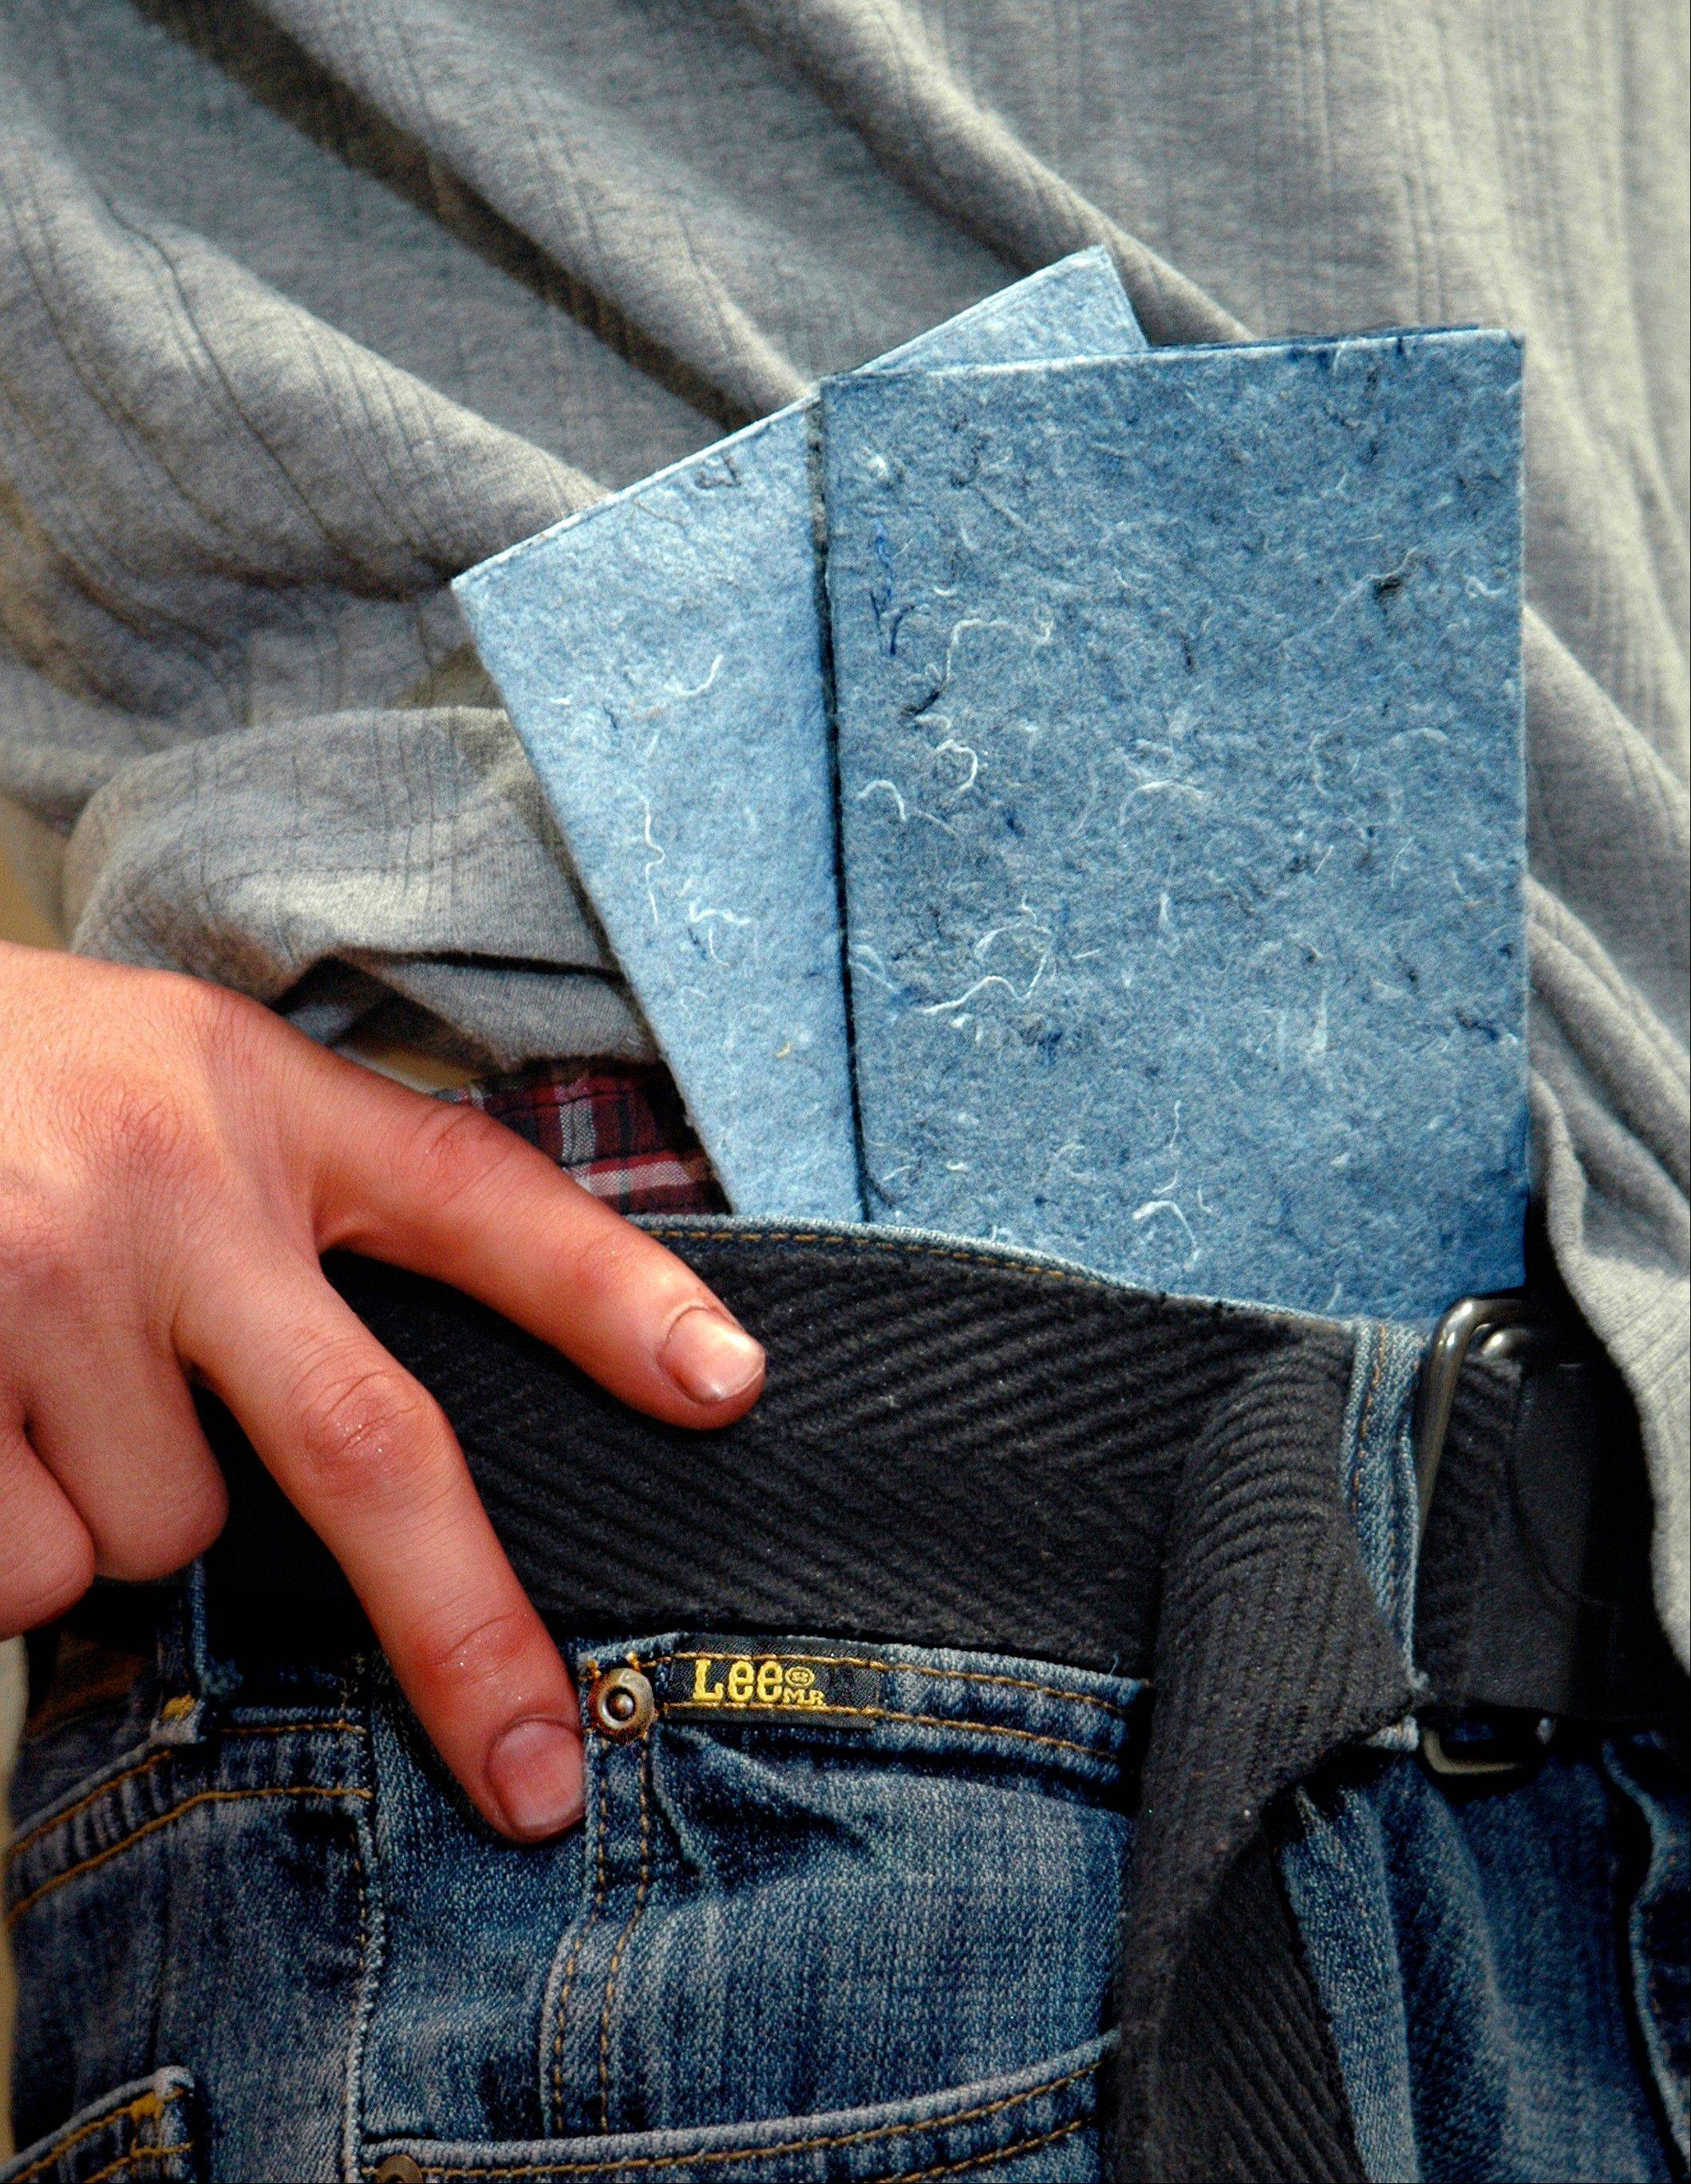 Recycled denim is turned into handmade greeting cards by workers with special needs at Paperworks Studio.